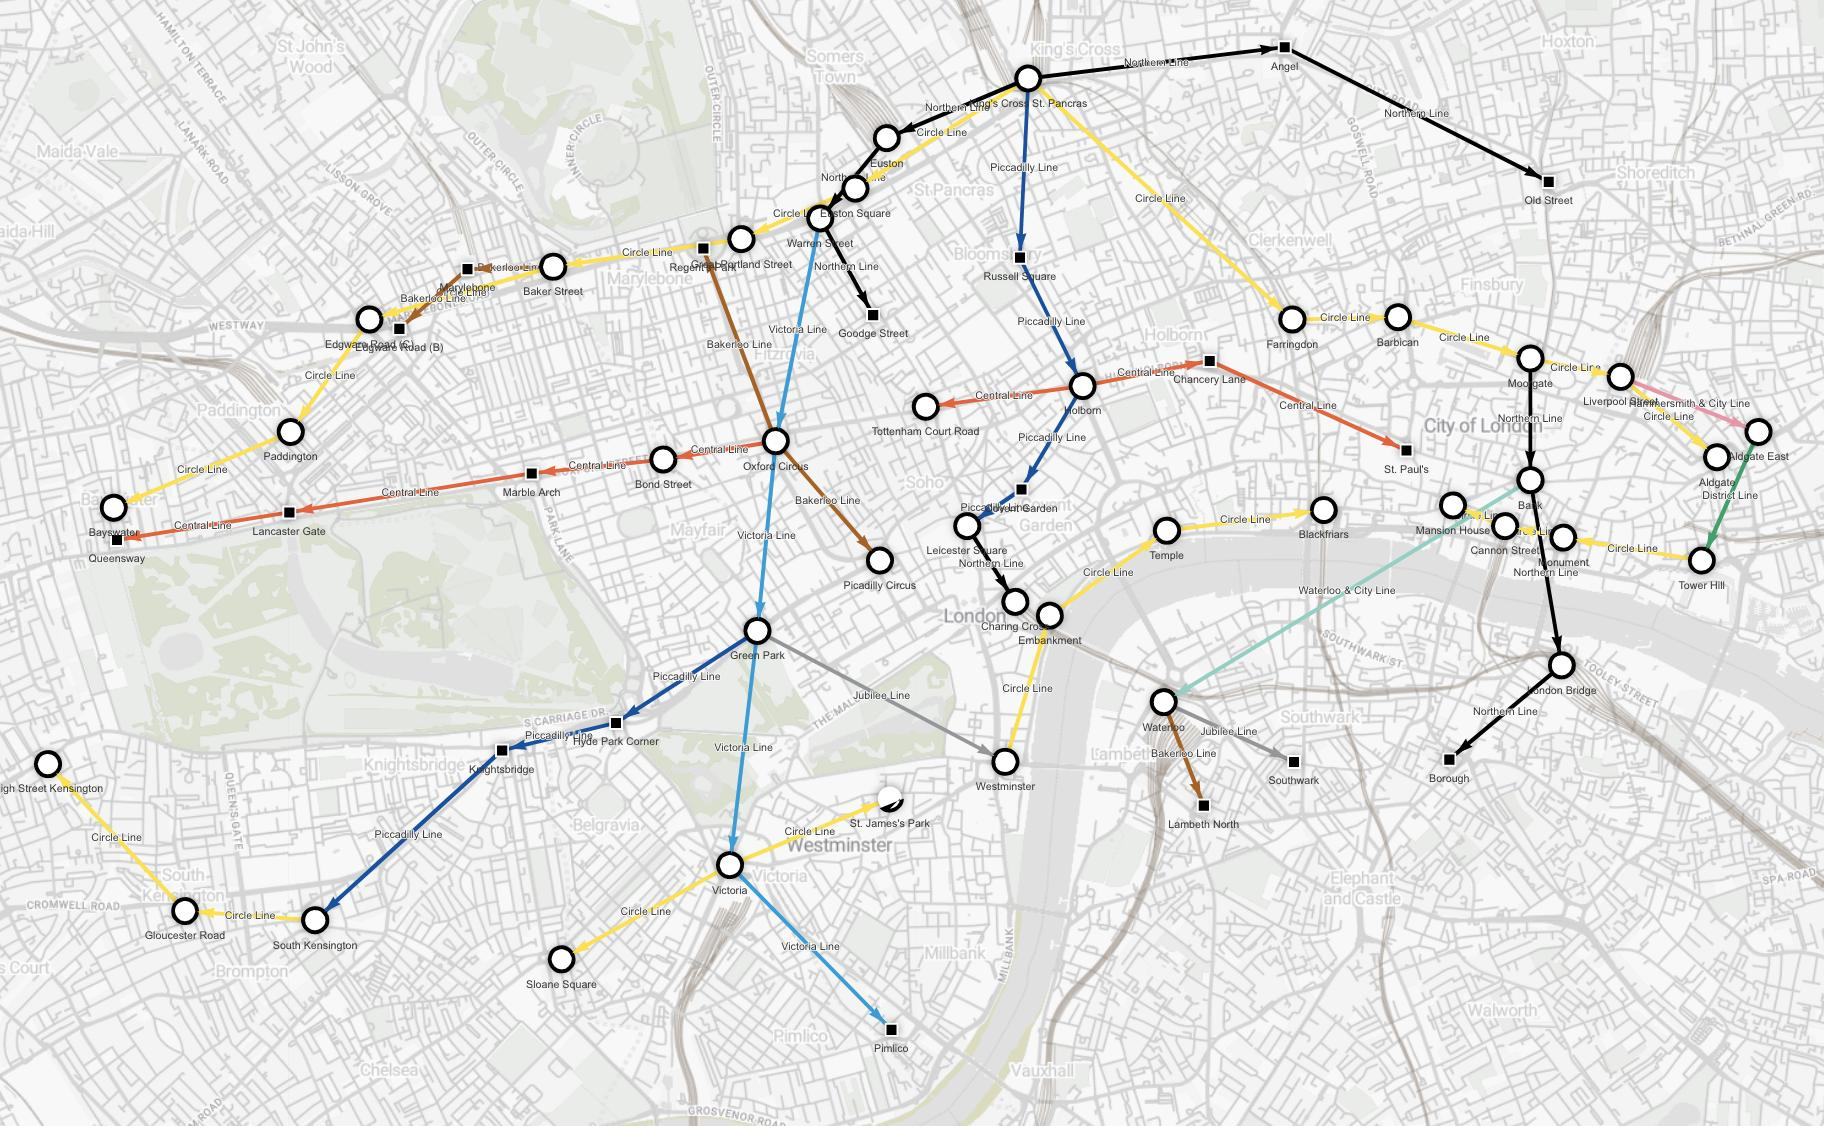 Data visualization - stations you can get to from St. Pancras in zone 1